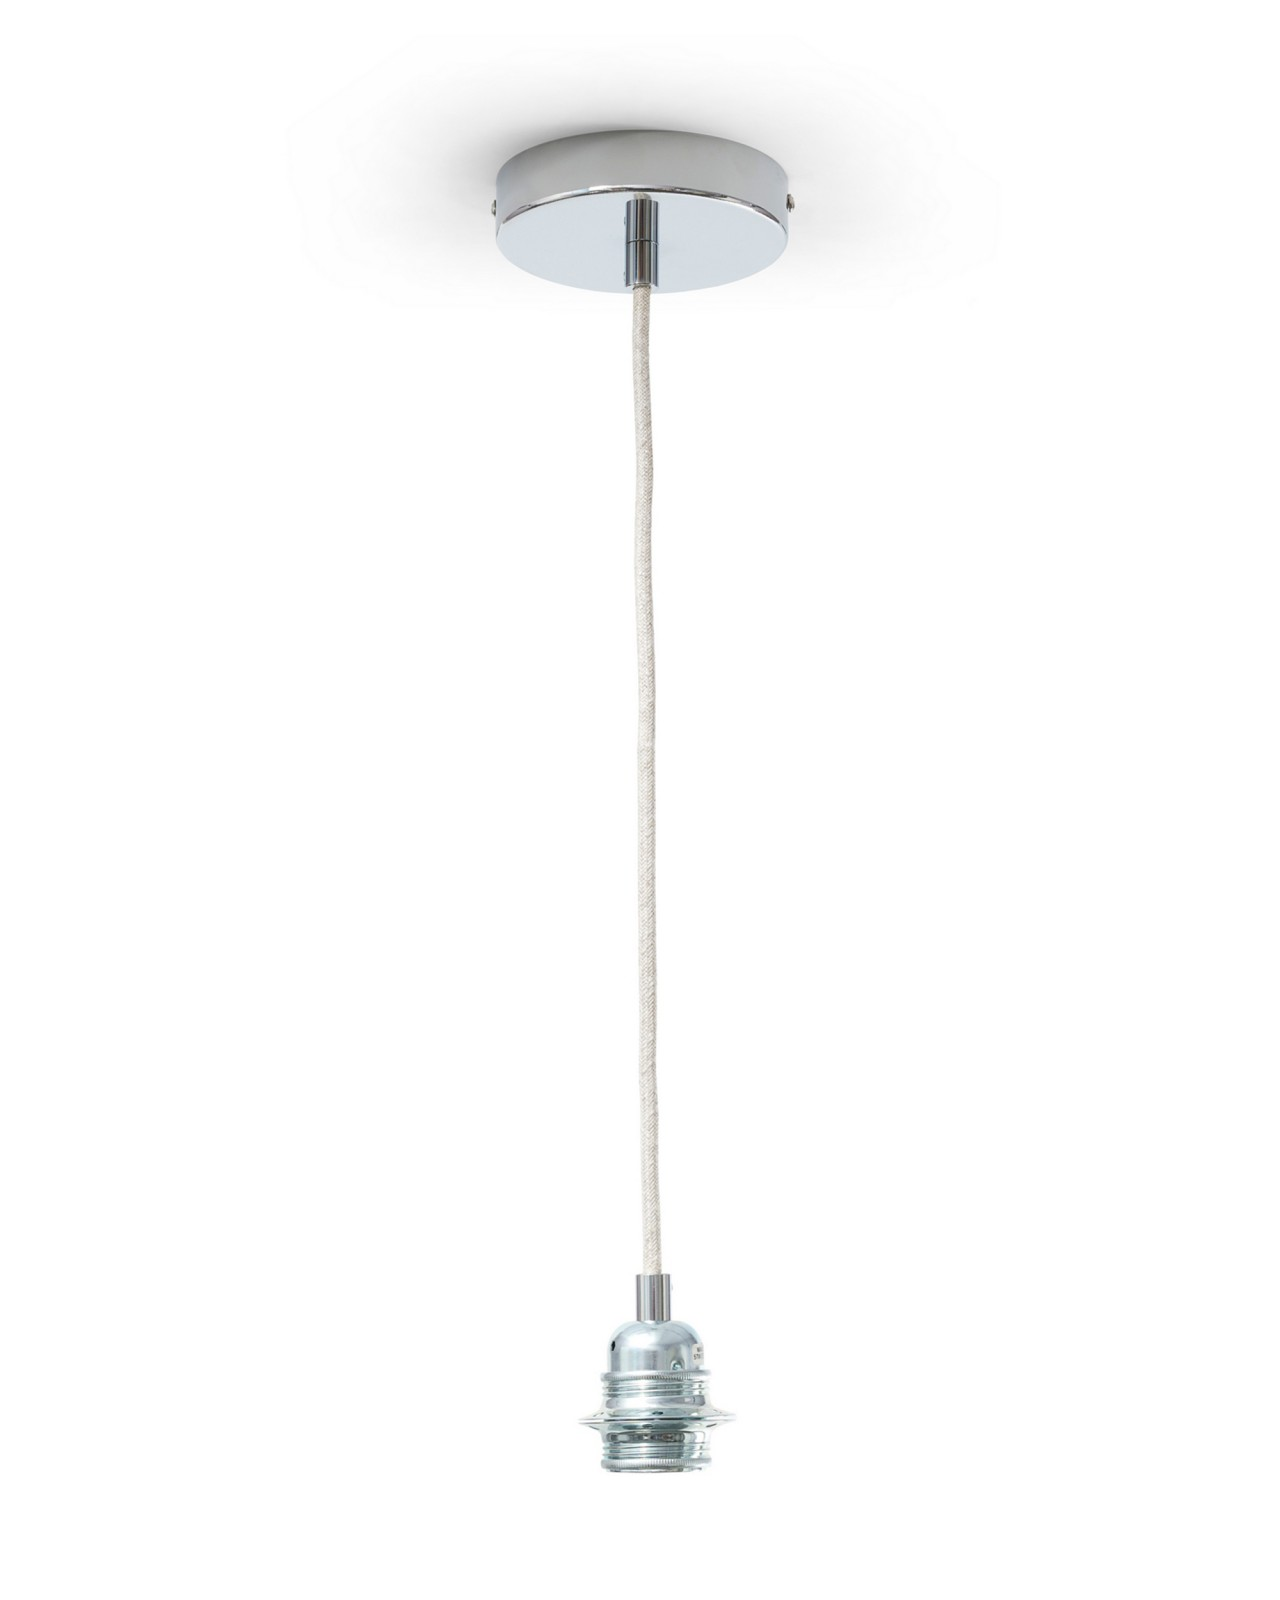 THE ISLAND Pendant Lamp